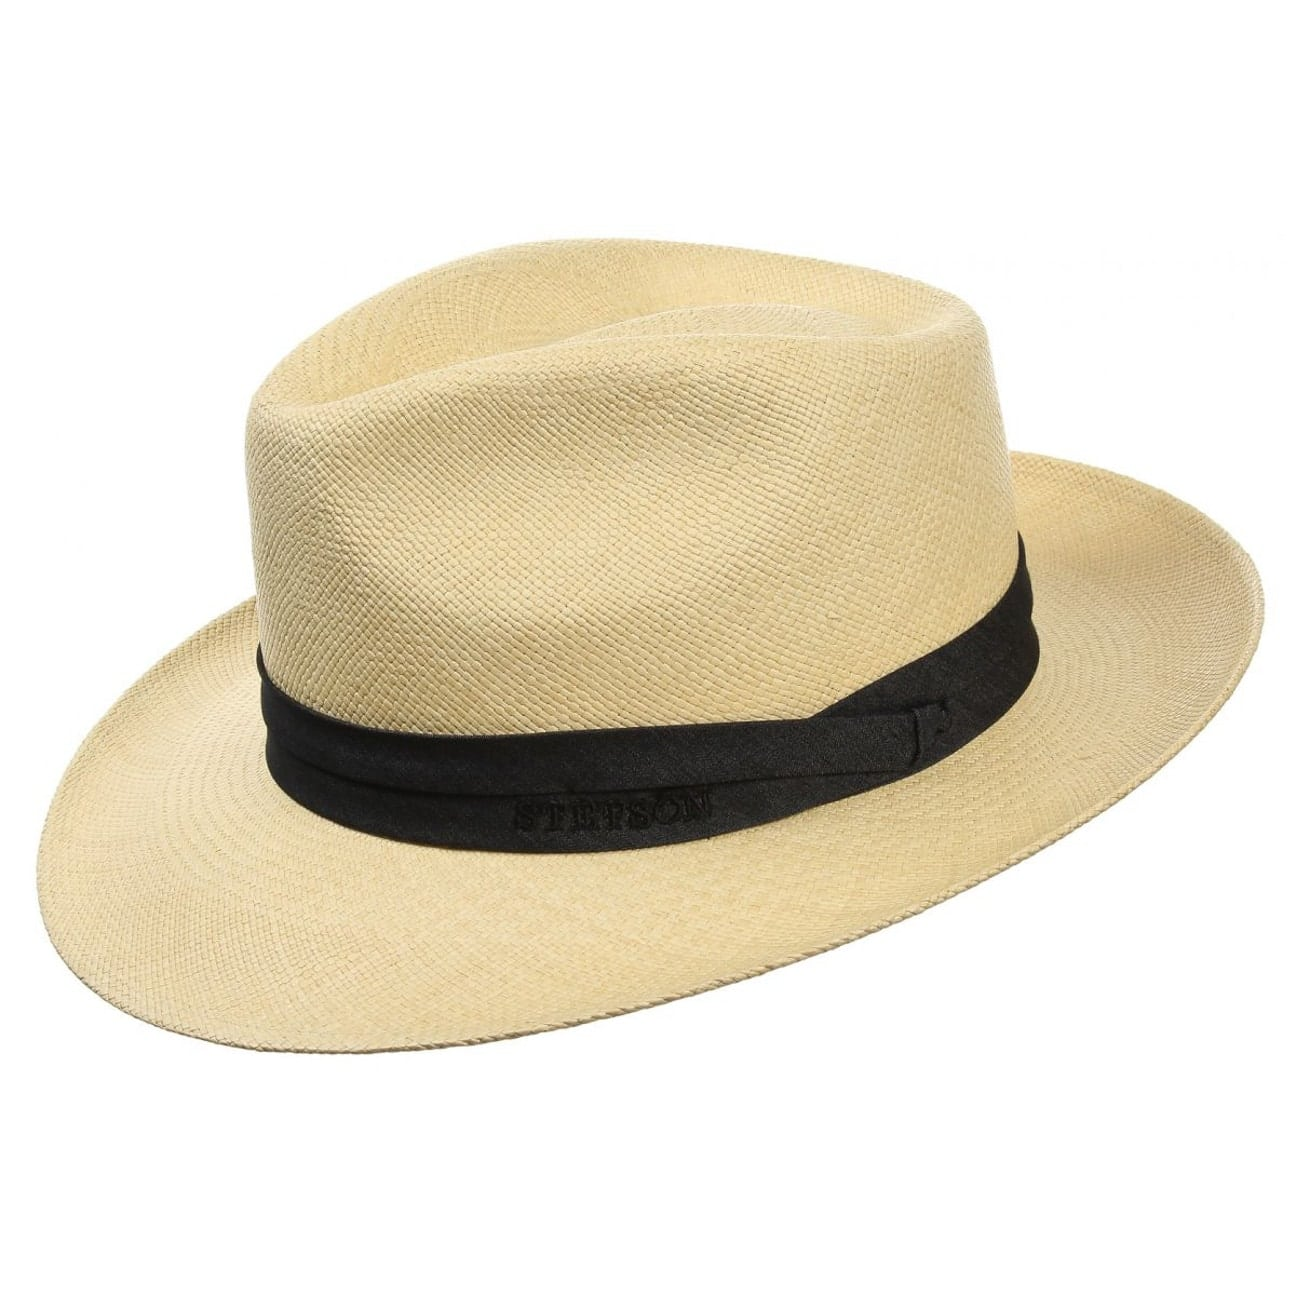 how to make a panama hat